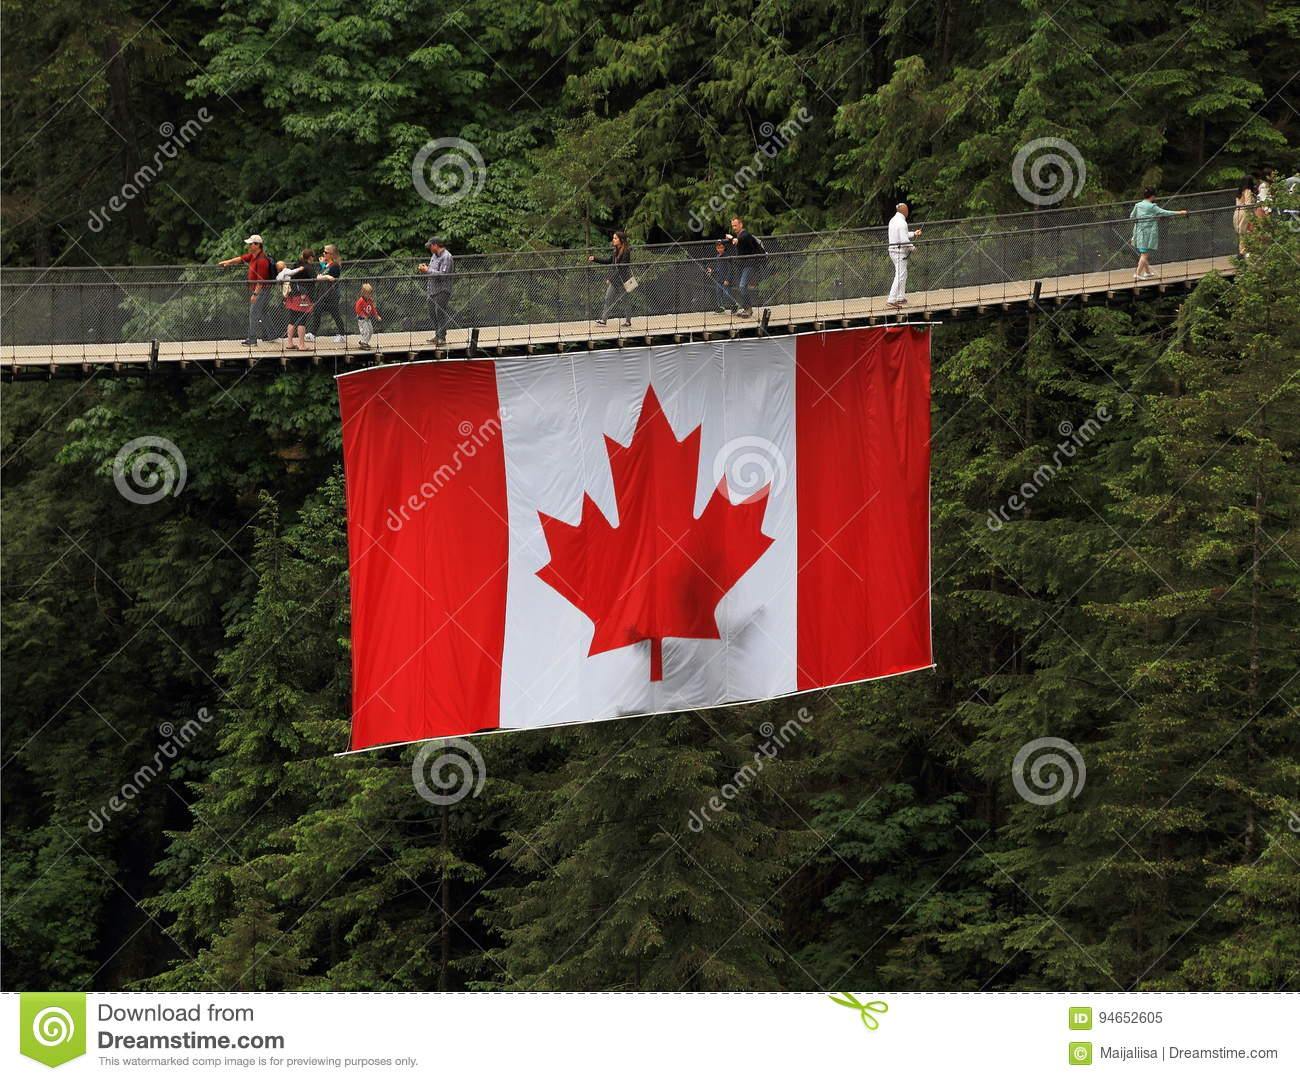 Tourism in Canada: Capilano Suspension Bridge with Canadian Flag